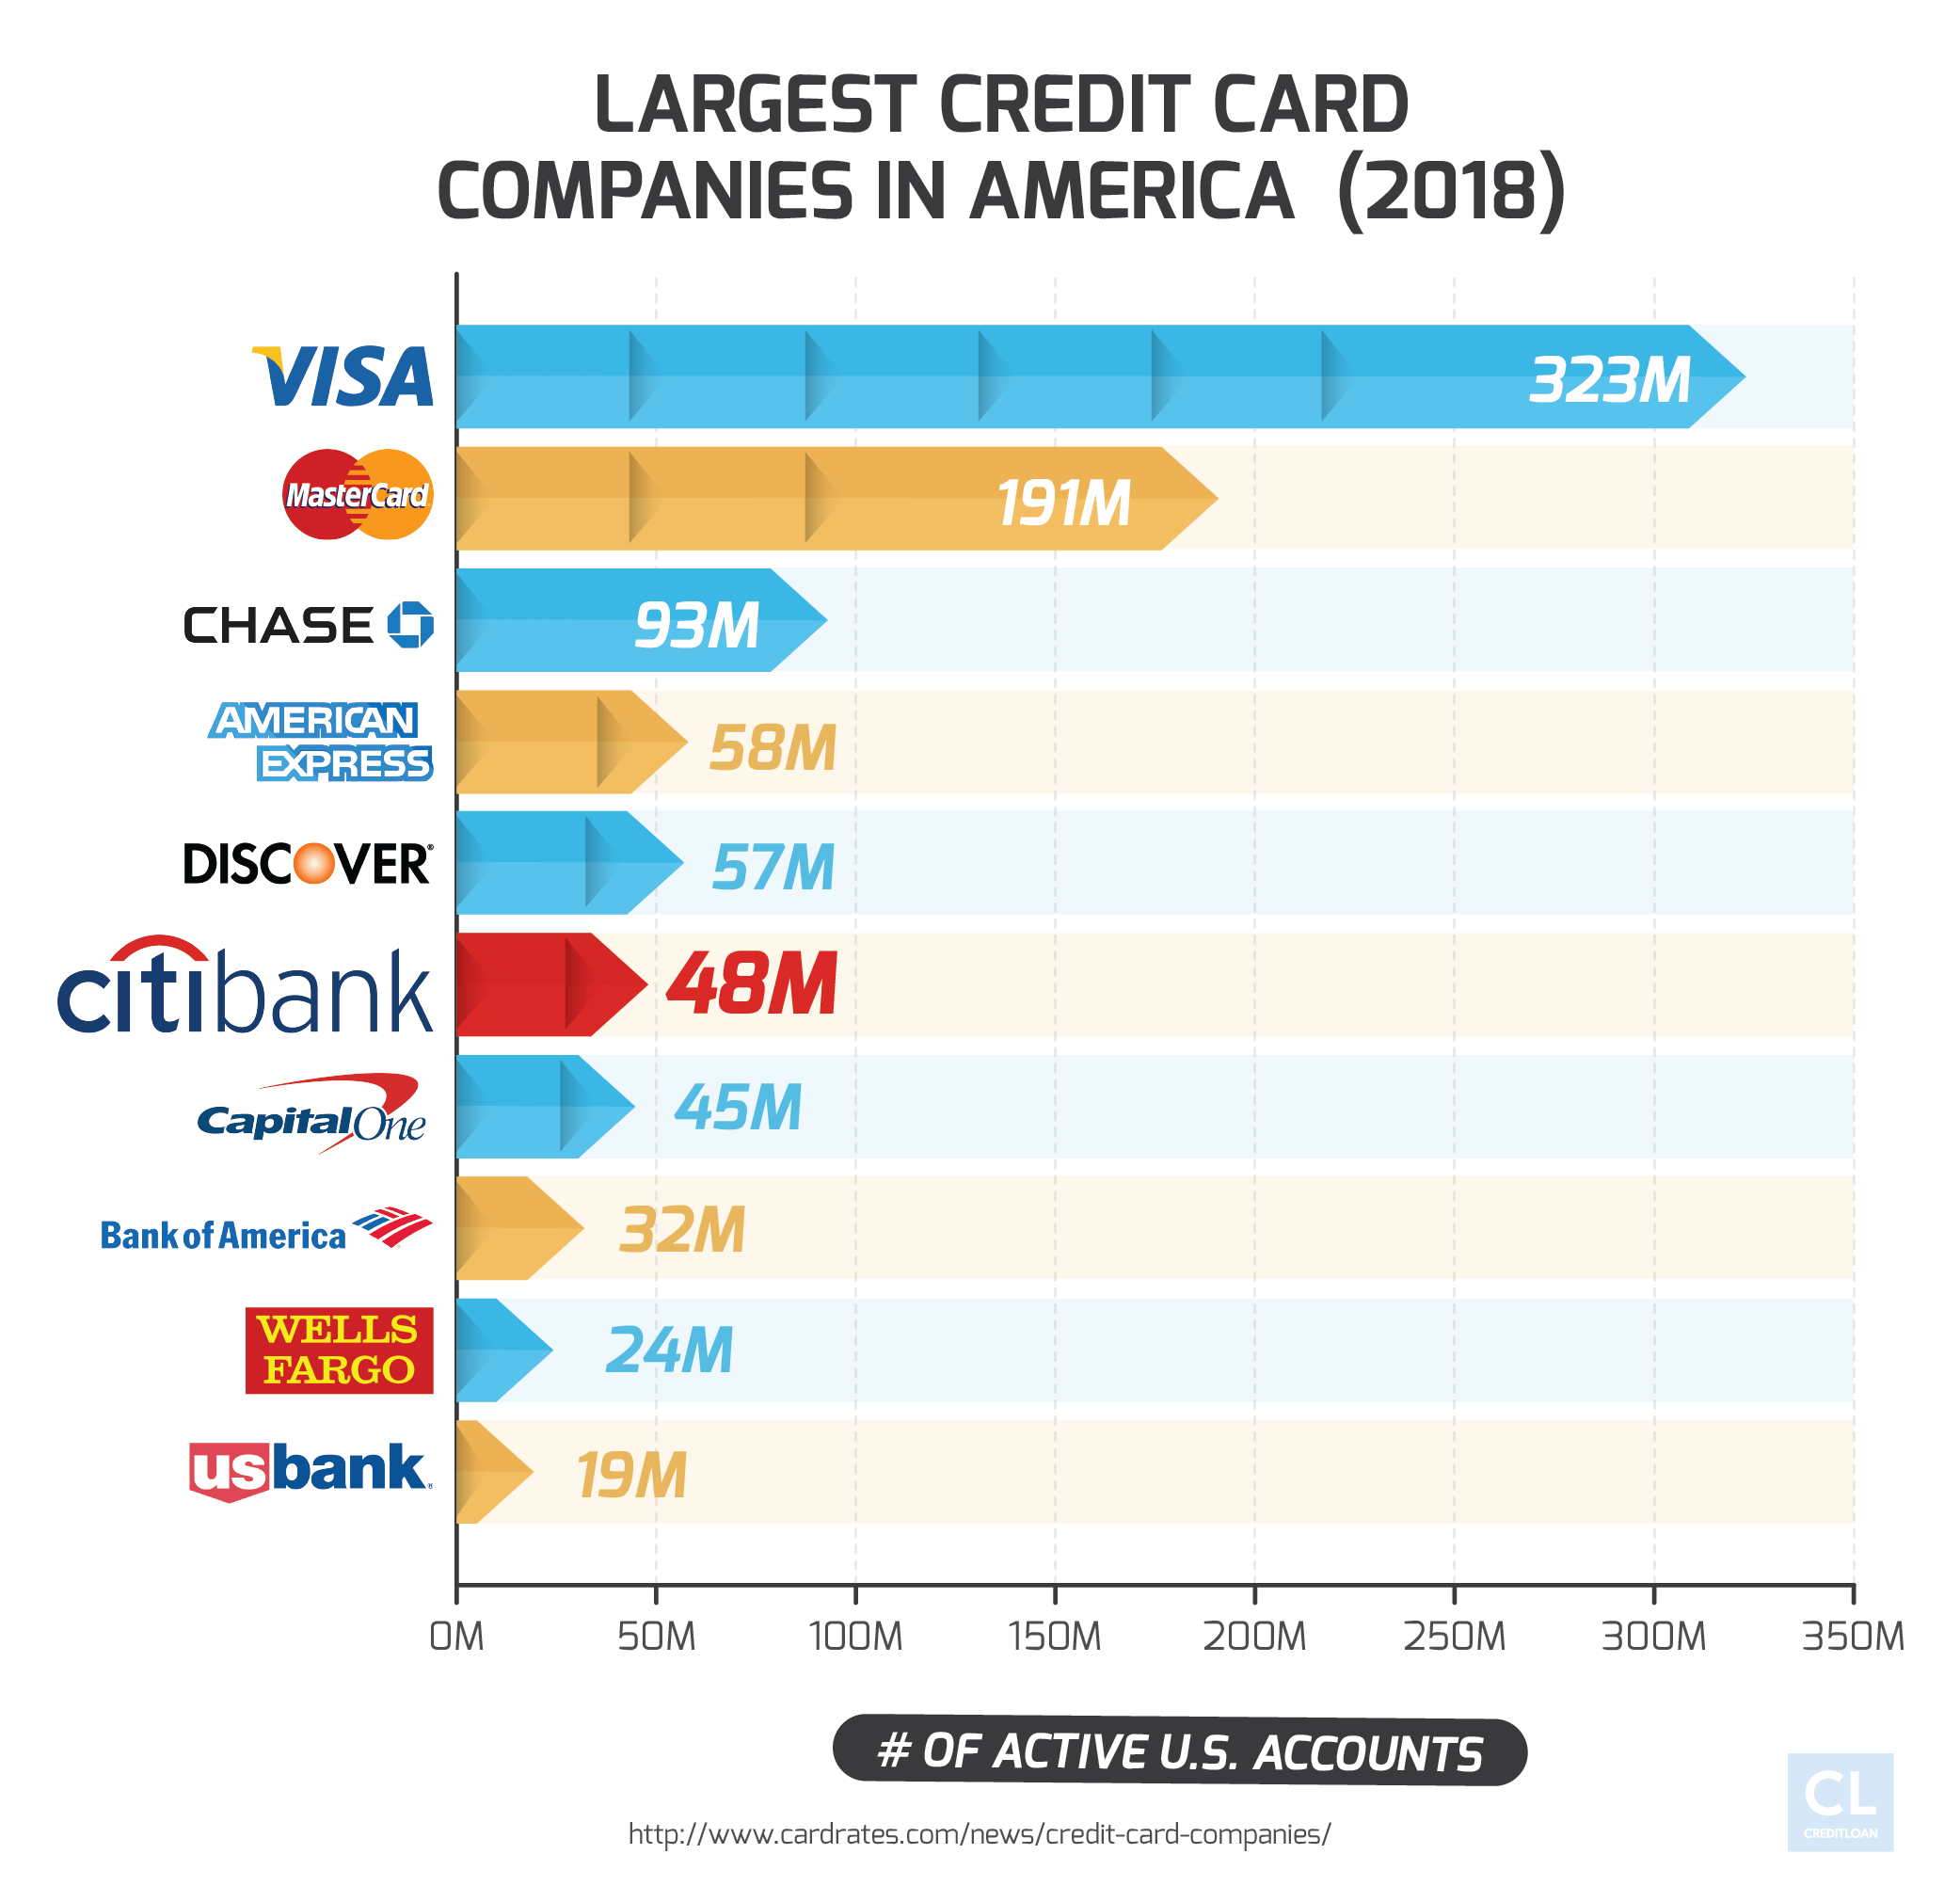 Largest Credit Card Companies in America in 2018